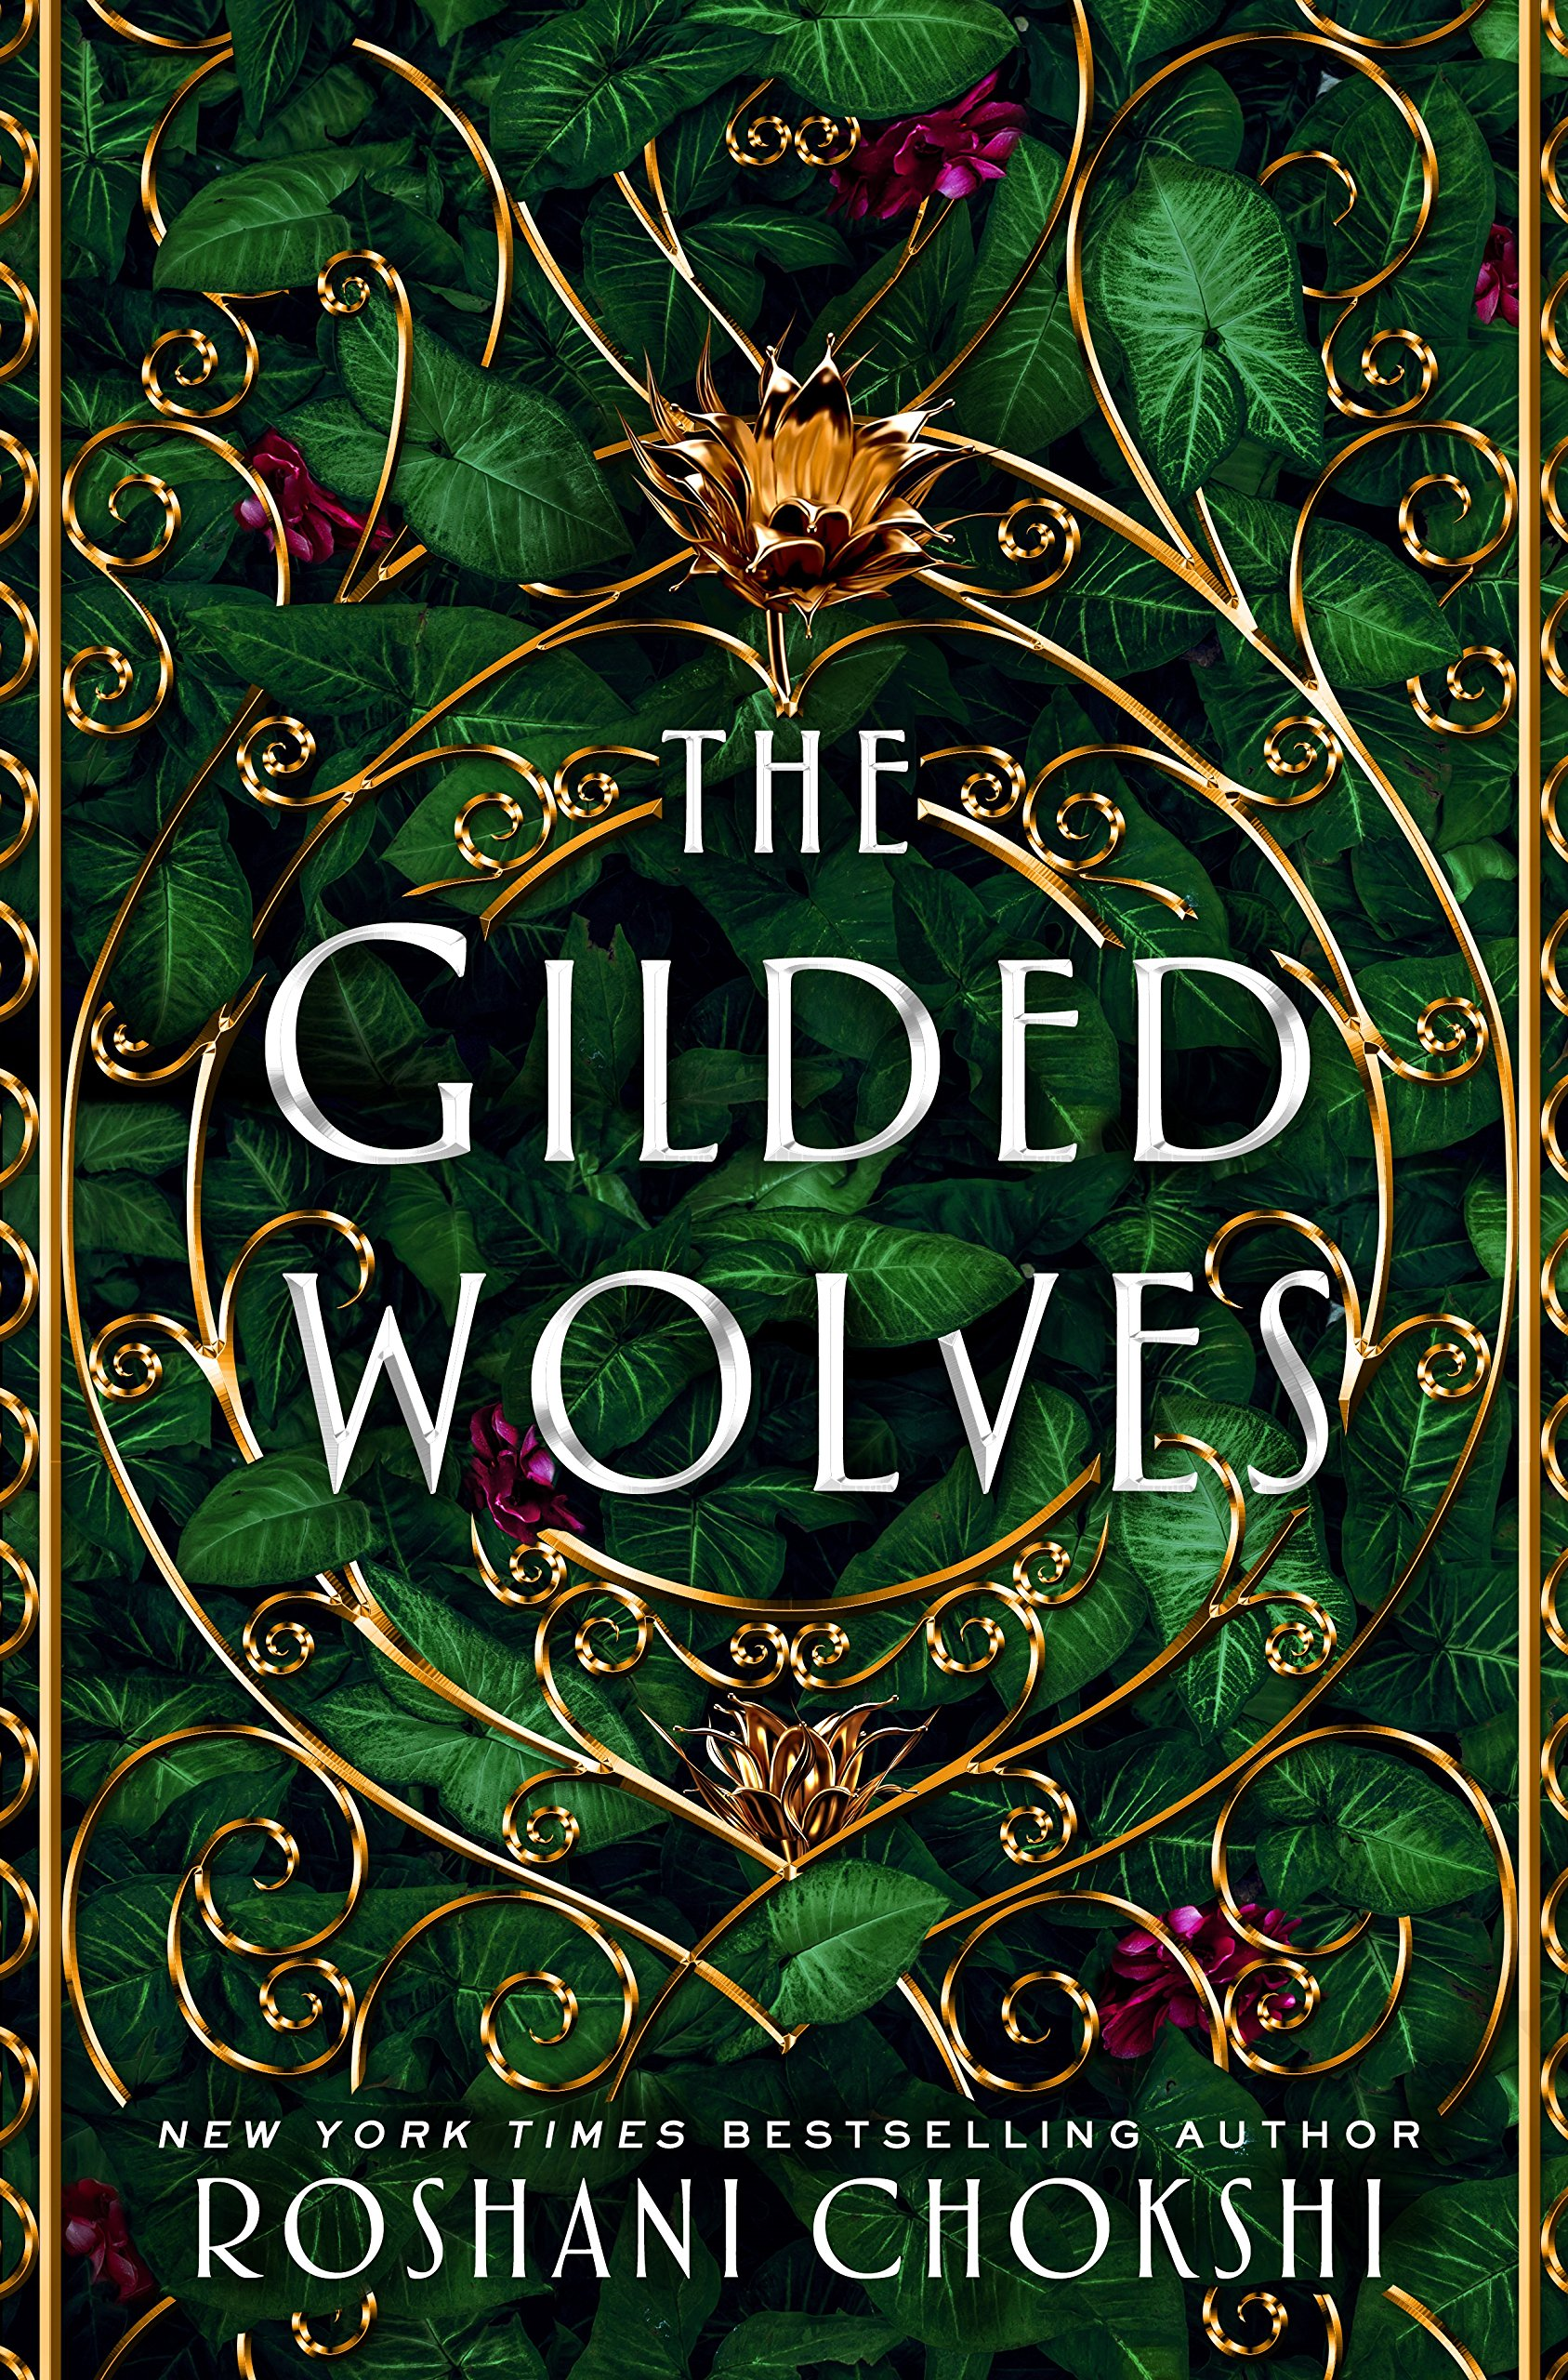 Image result for the gilded wolves book